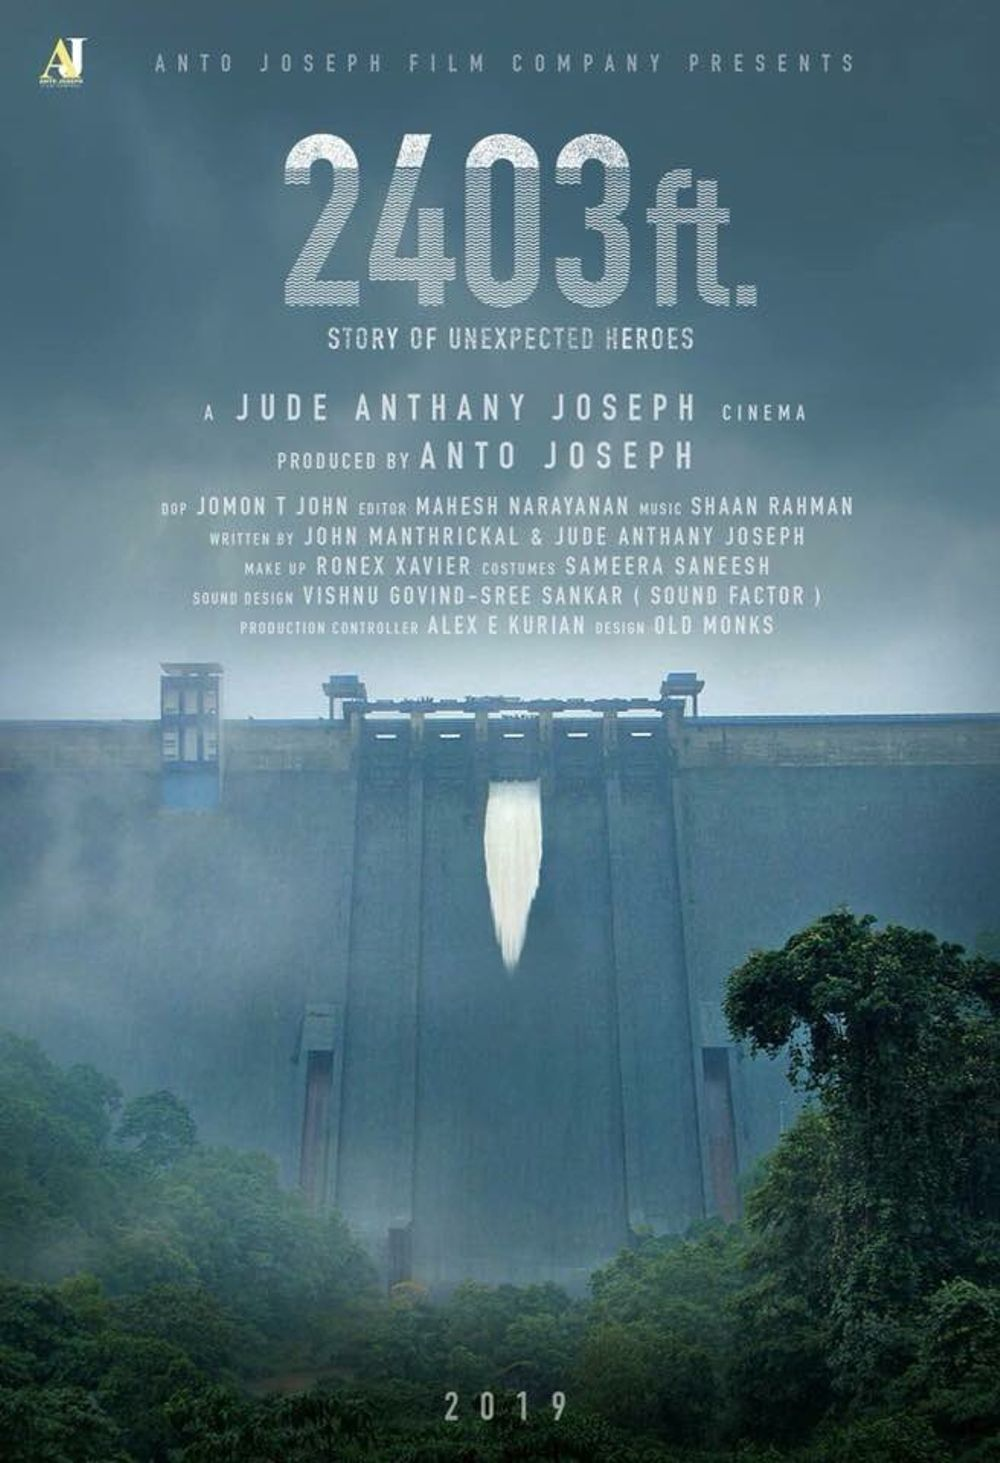 2403 Ft Movie Review Malayalam Movie Review